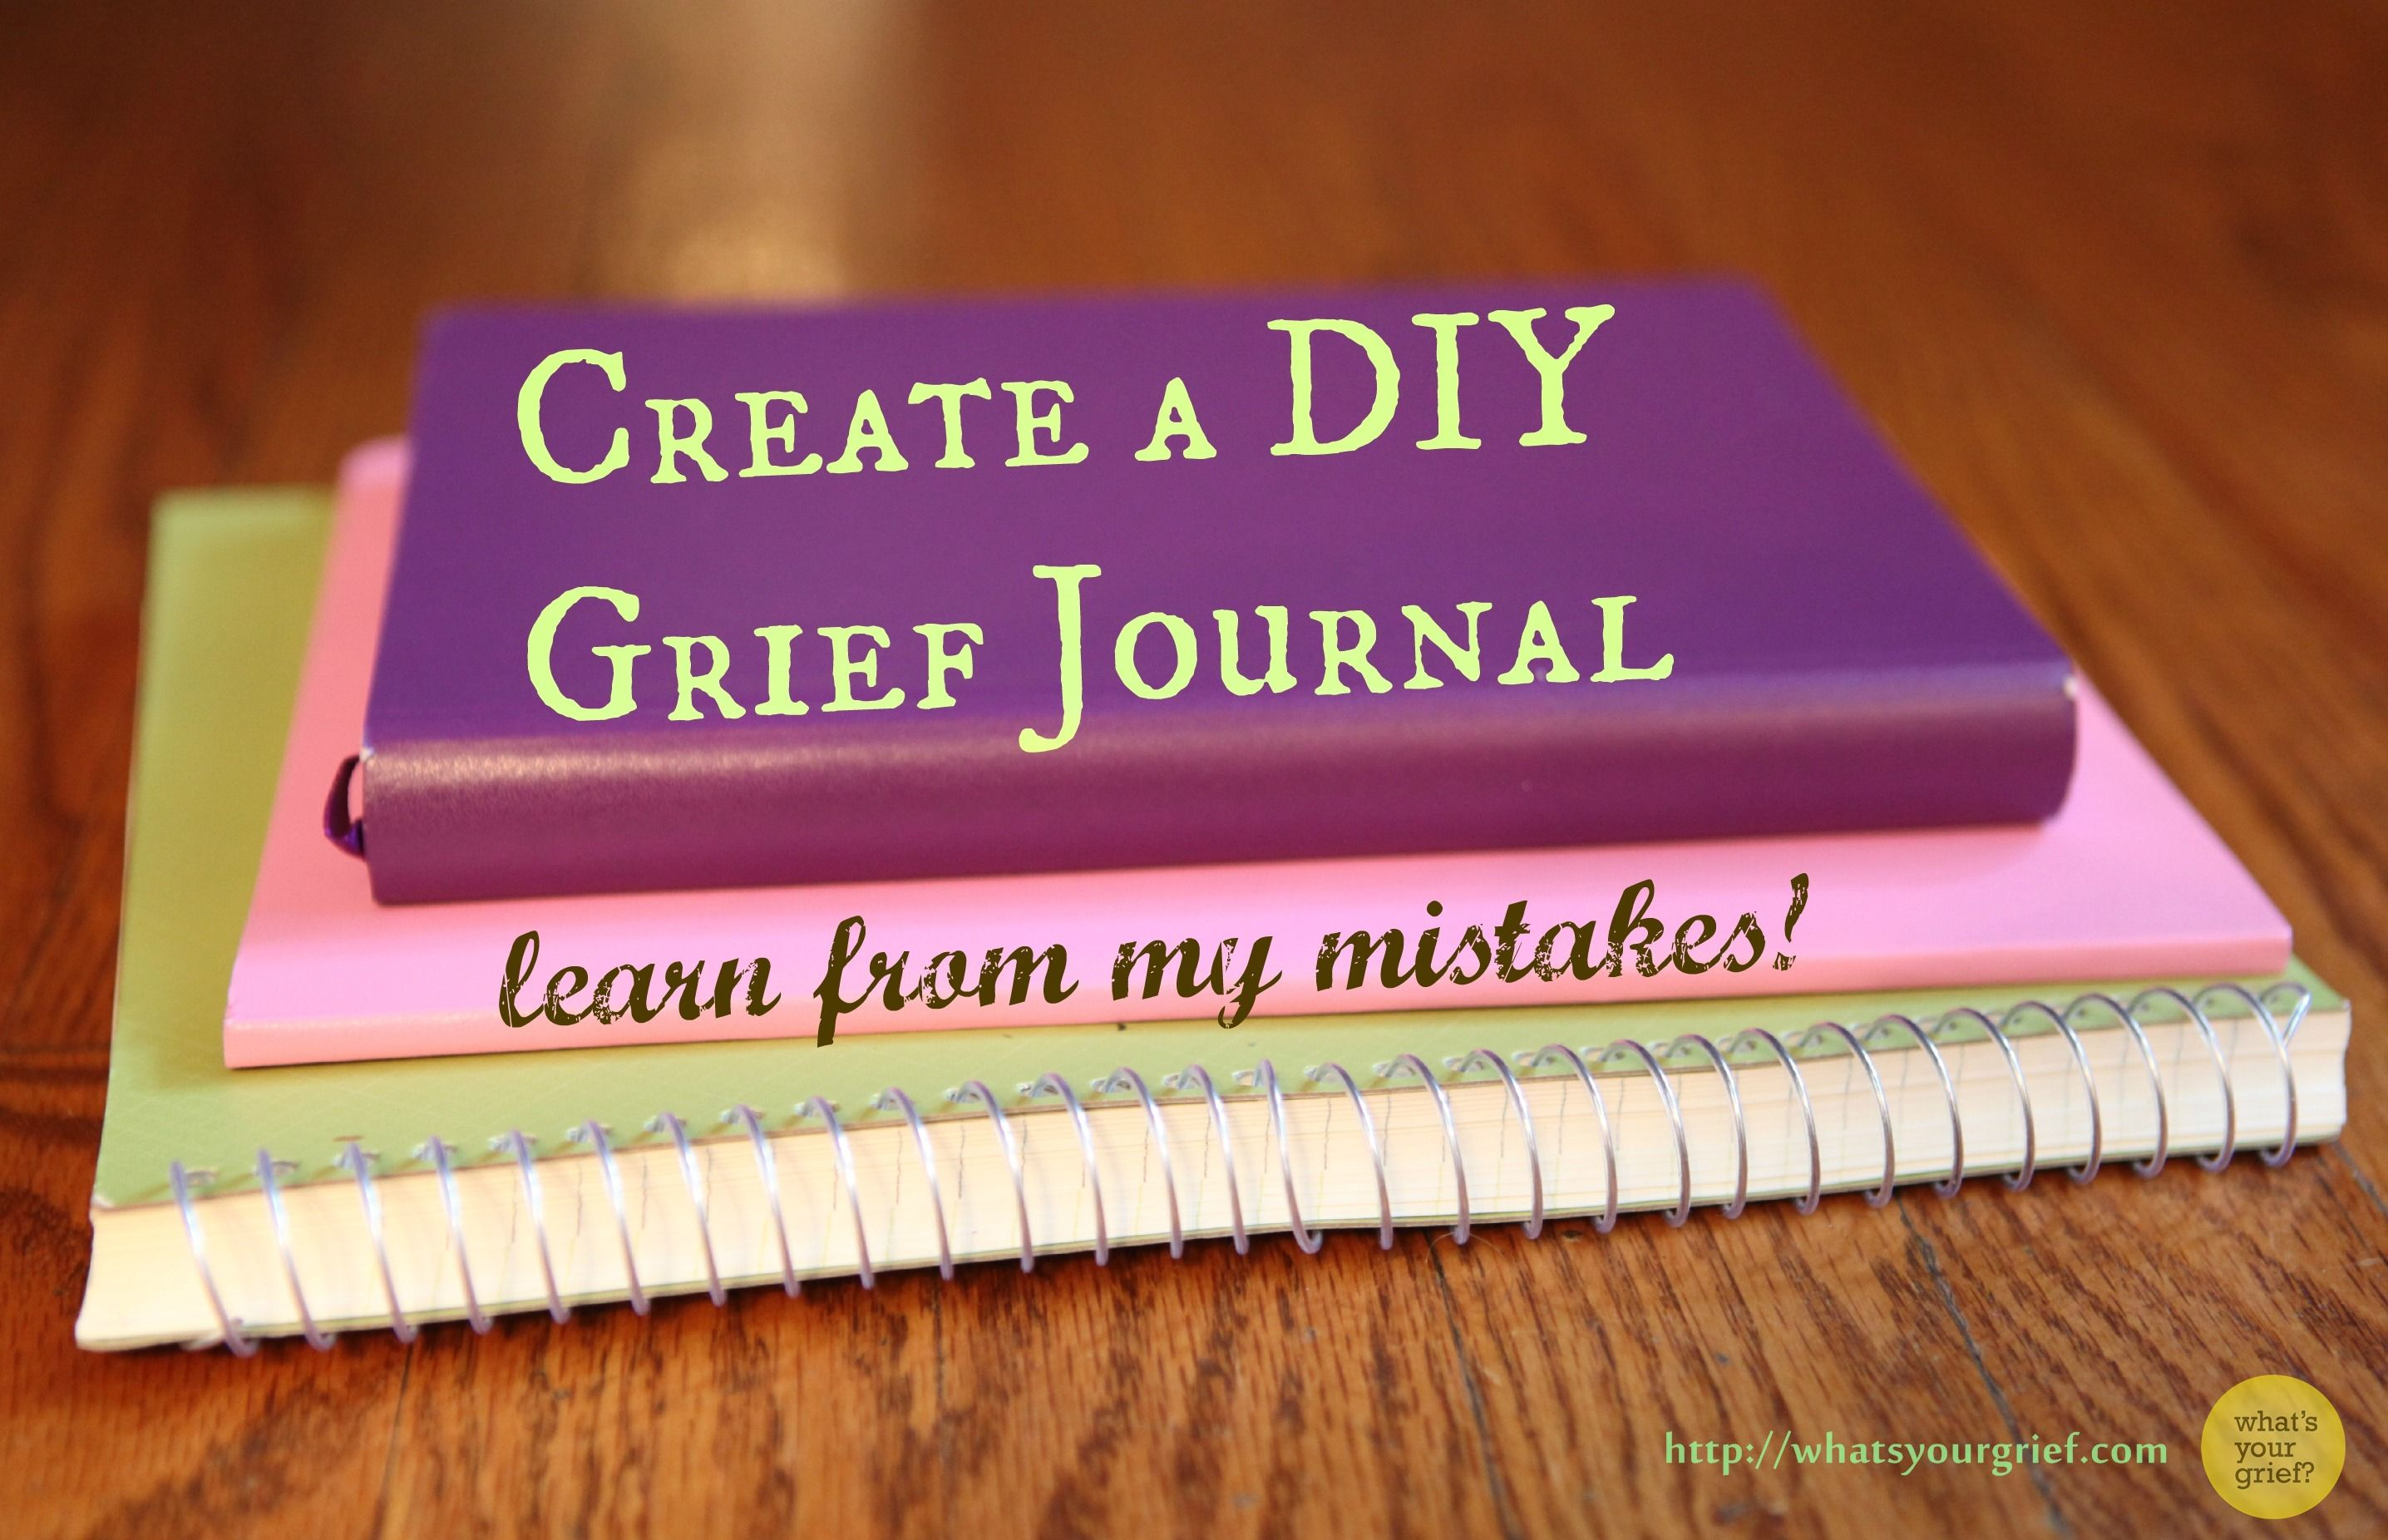 Goodtherapy On Foster Care Encouragement T Grief